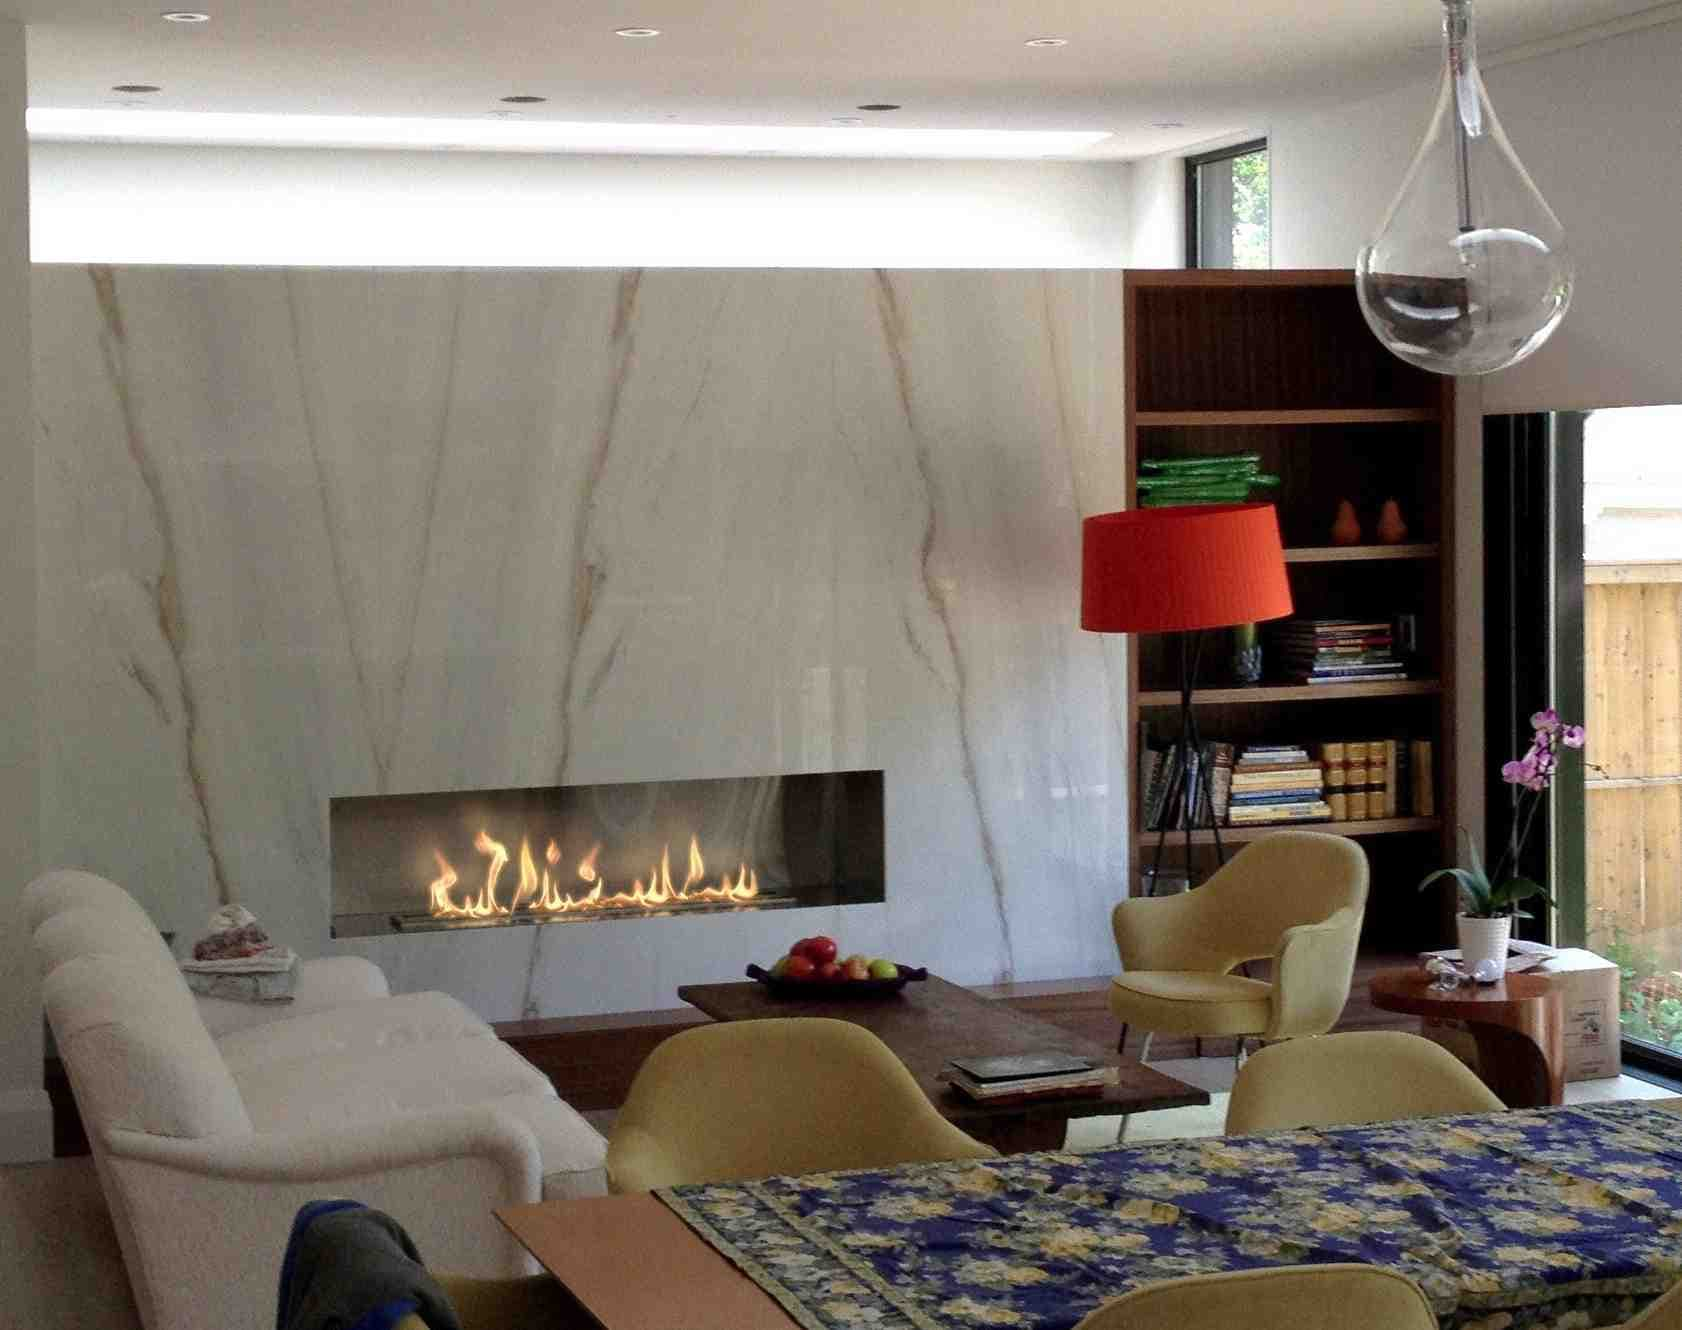 The BIo Flame's Ethanol Fireplaces Are Now Available in Melbourne, Australia!